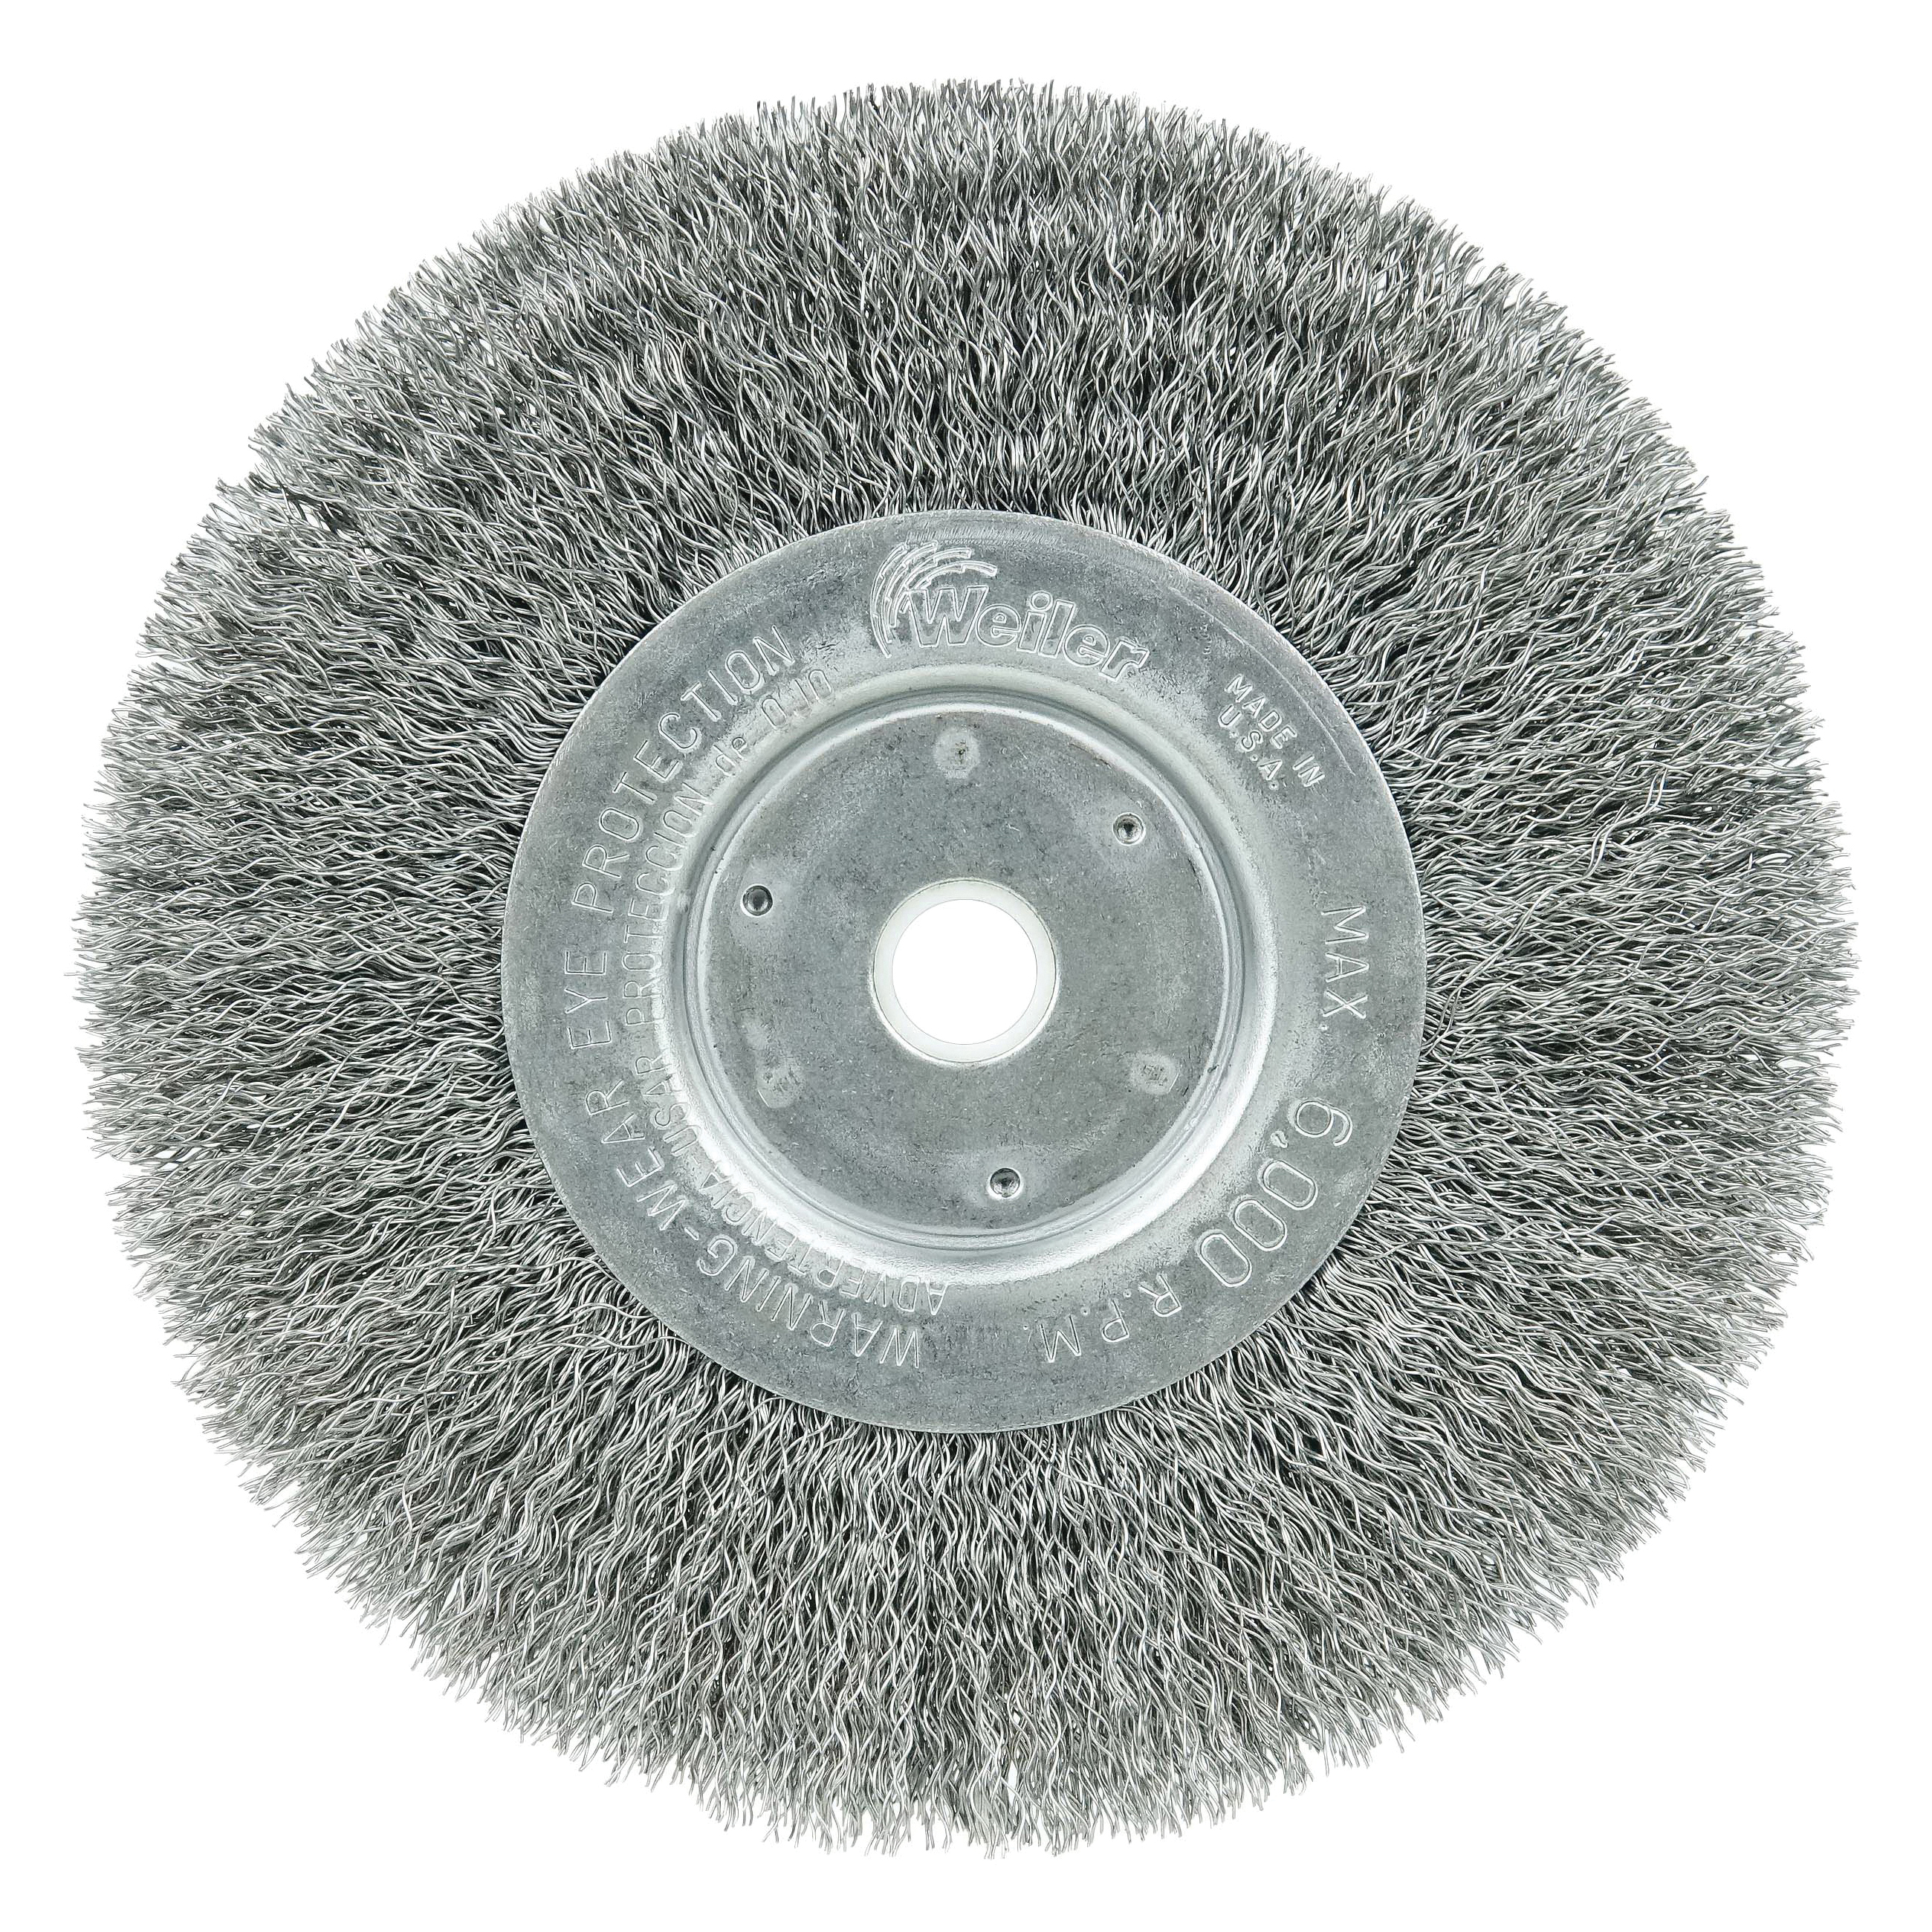 Weiler® 00214 Narrow Face Wheel Brush, 3 in Dia Brush, 7/16 in W Face, 0.008 in Dia Crimped Filament/Wire, 1/2 to 3/8 in Arbor Hole